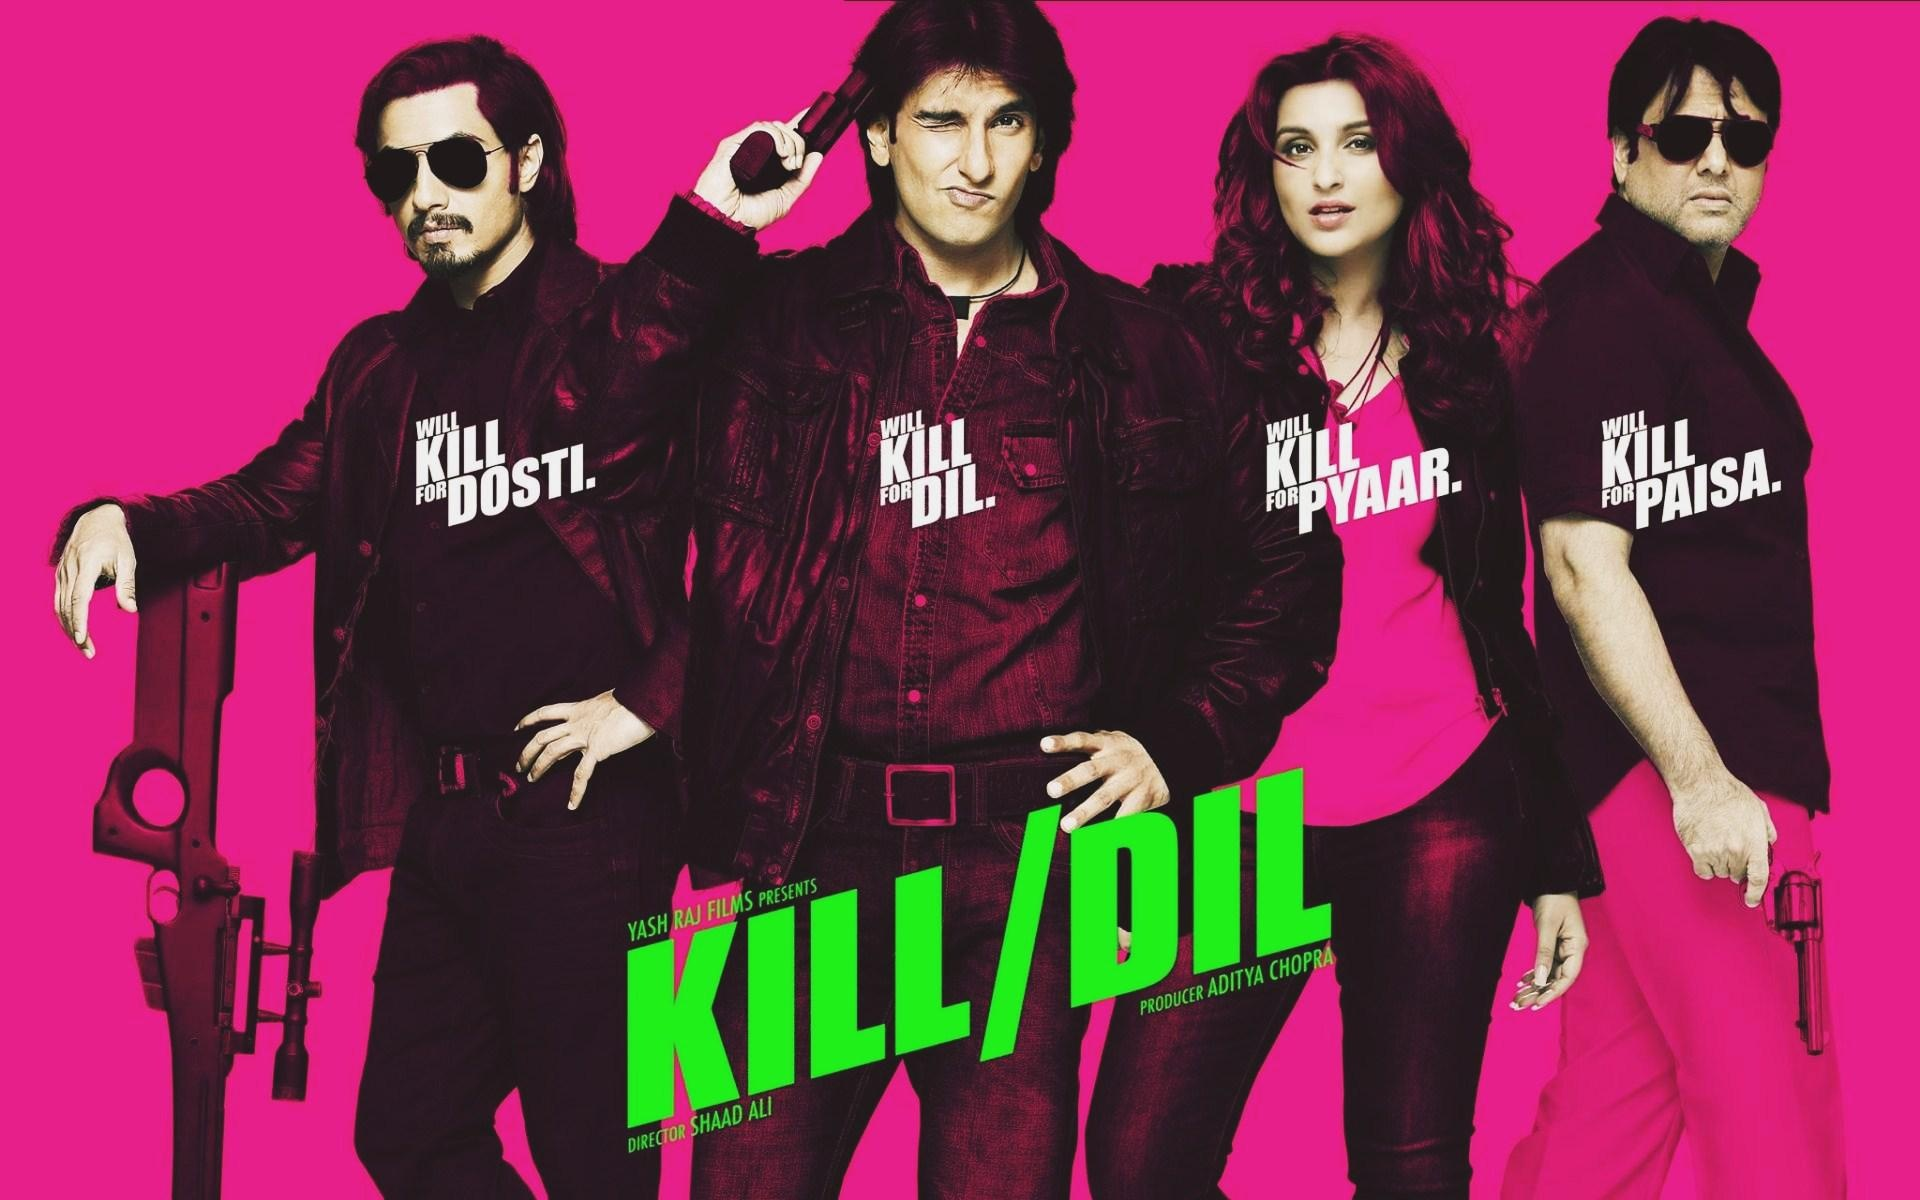 kill dil movie wallpapers in jpg format for free download